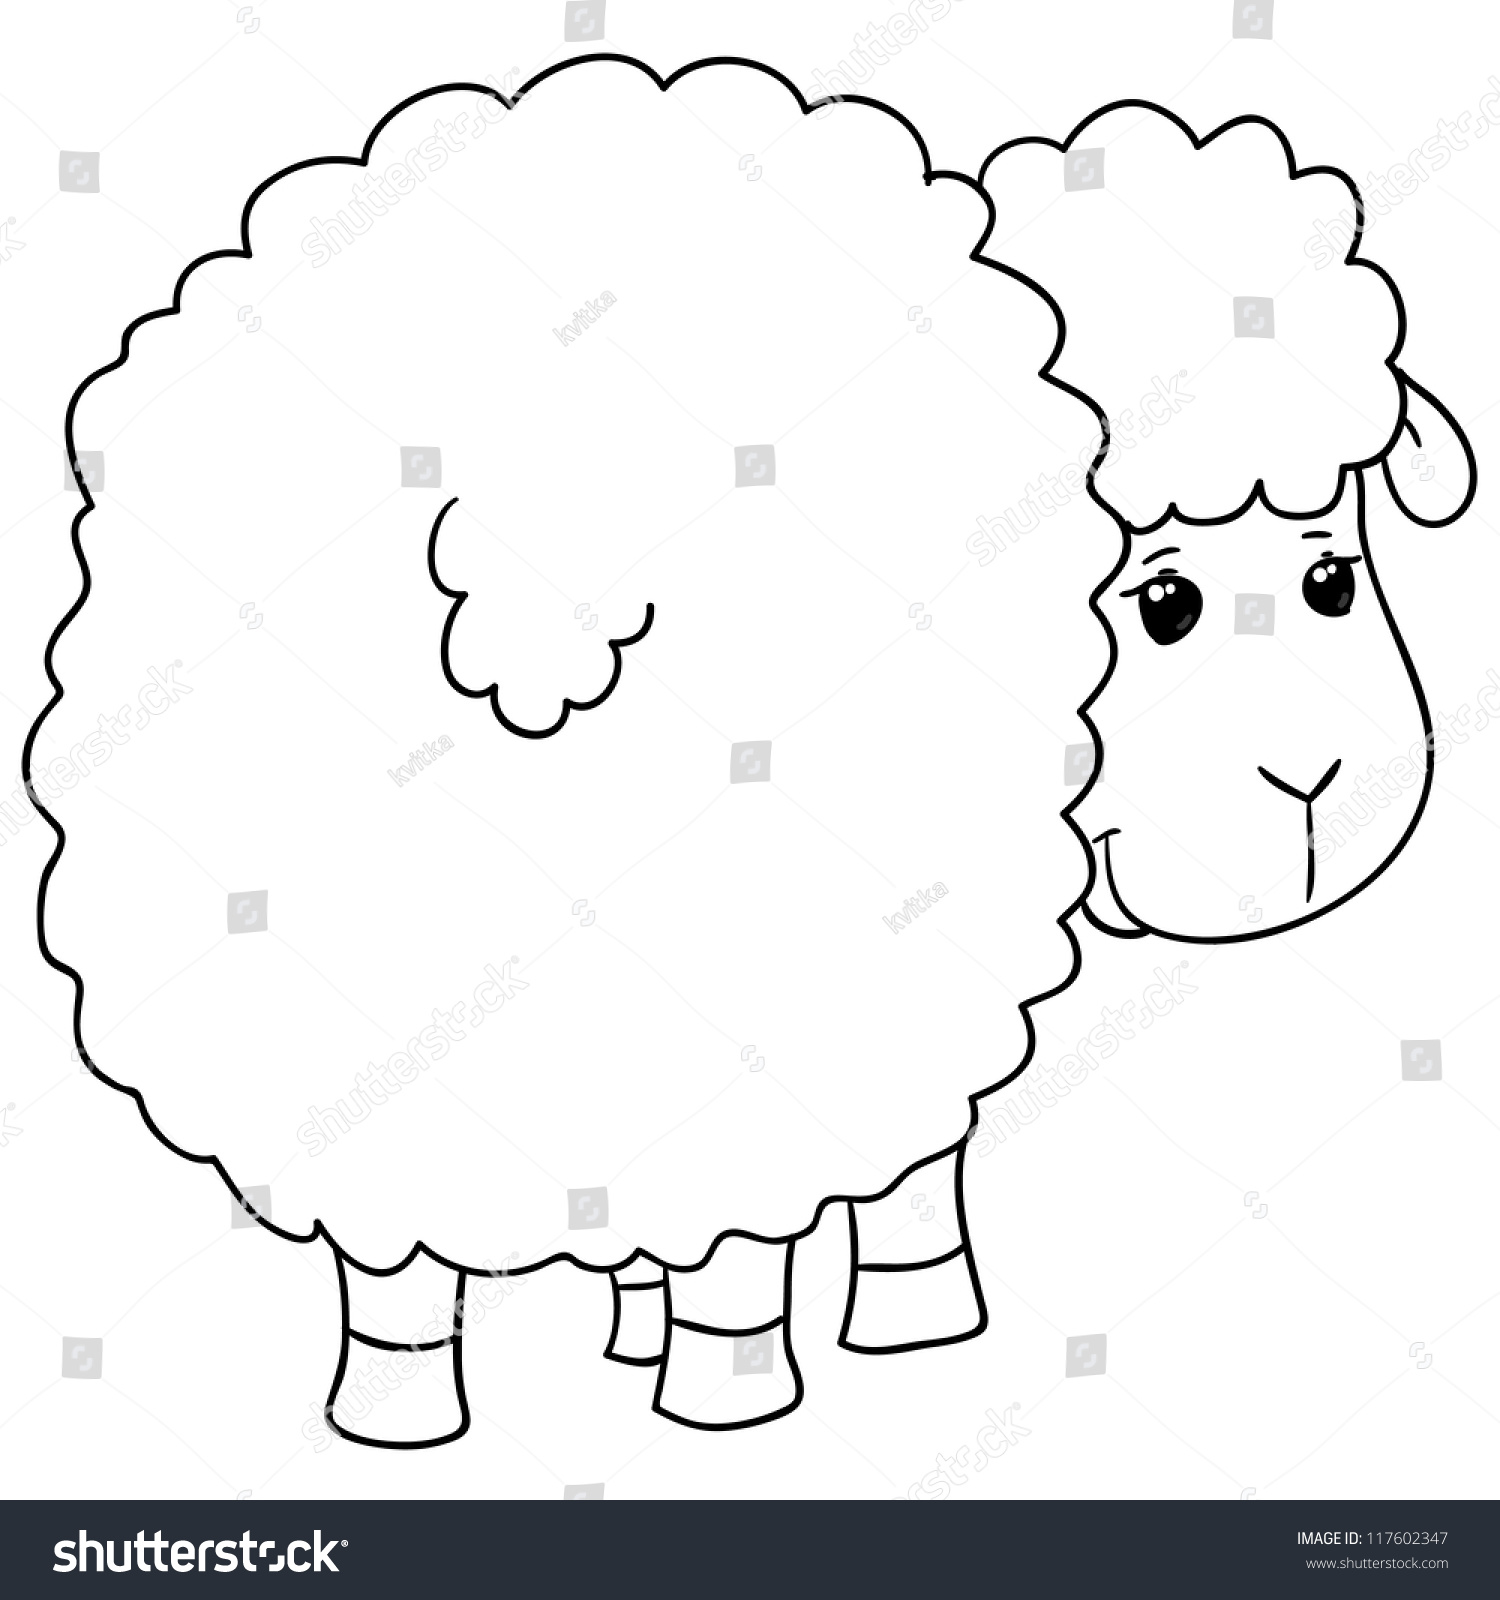 coloring pictures sheep : Sheep Coloring